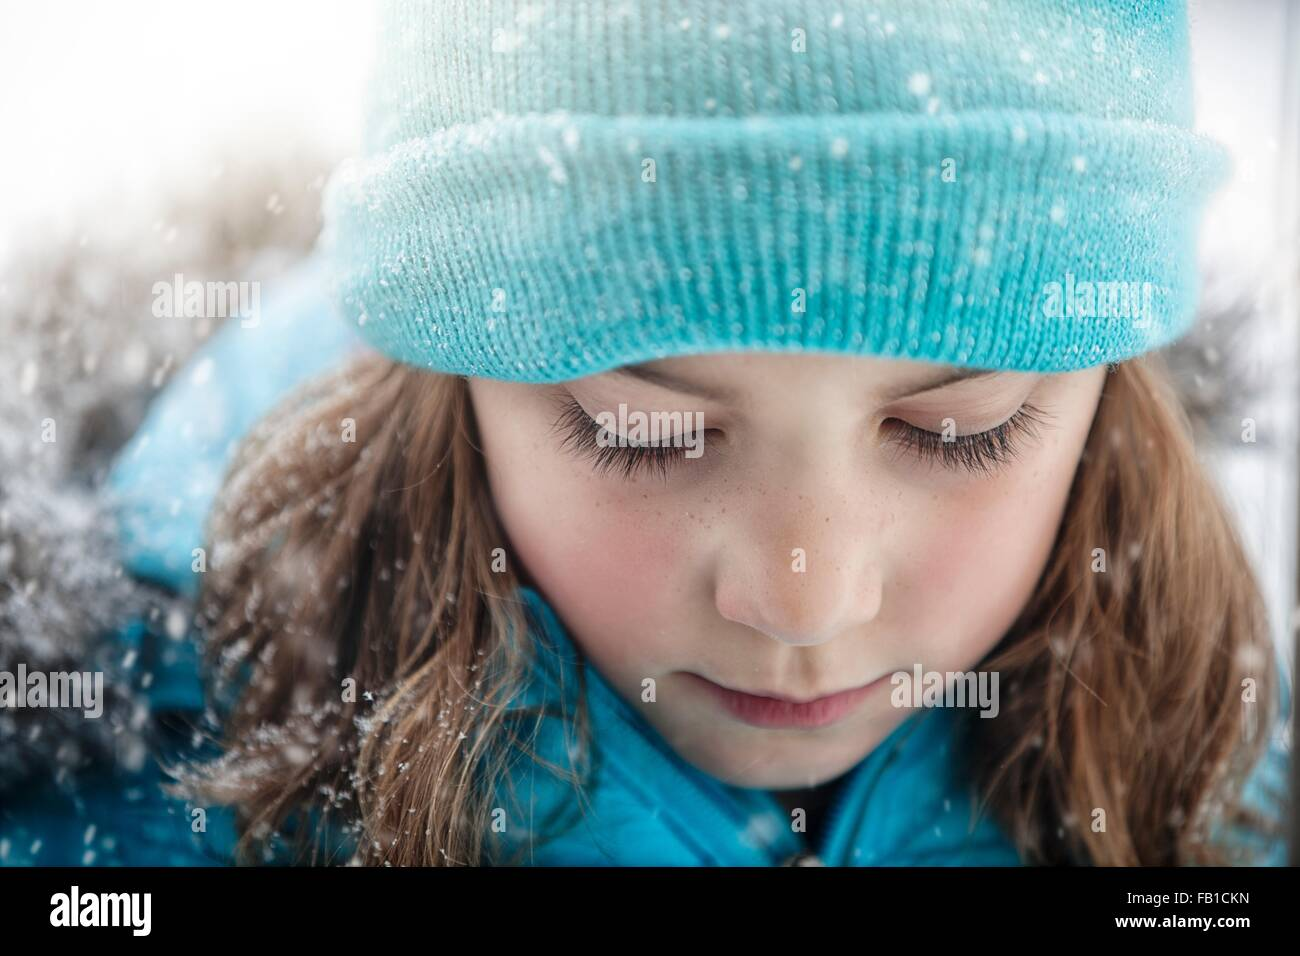 Close up portrait of girl wearing Knit hat looking down, neige Photo Stock